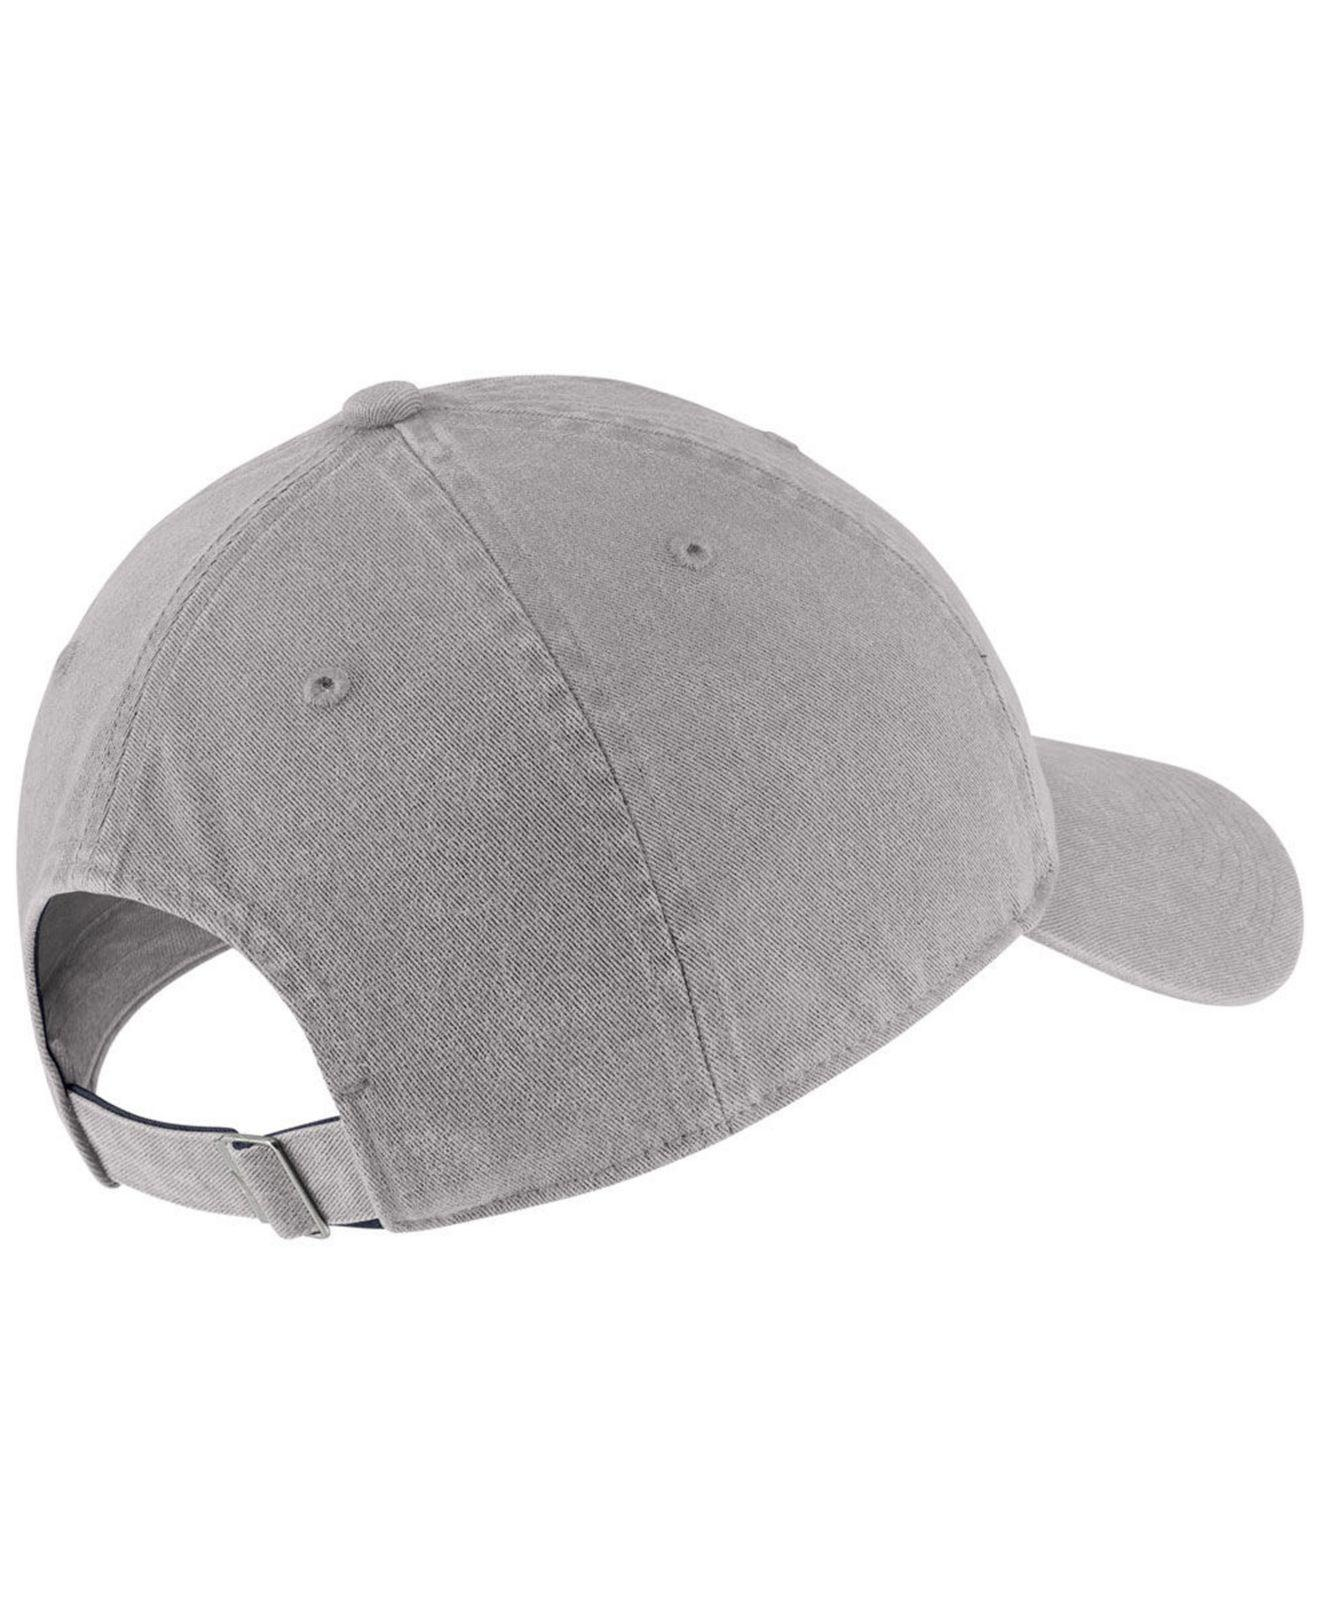 41f602f47af Lyst - Nike West Virginia Mountaineers H86 Washed Strapback Cap in Gray for  Men